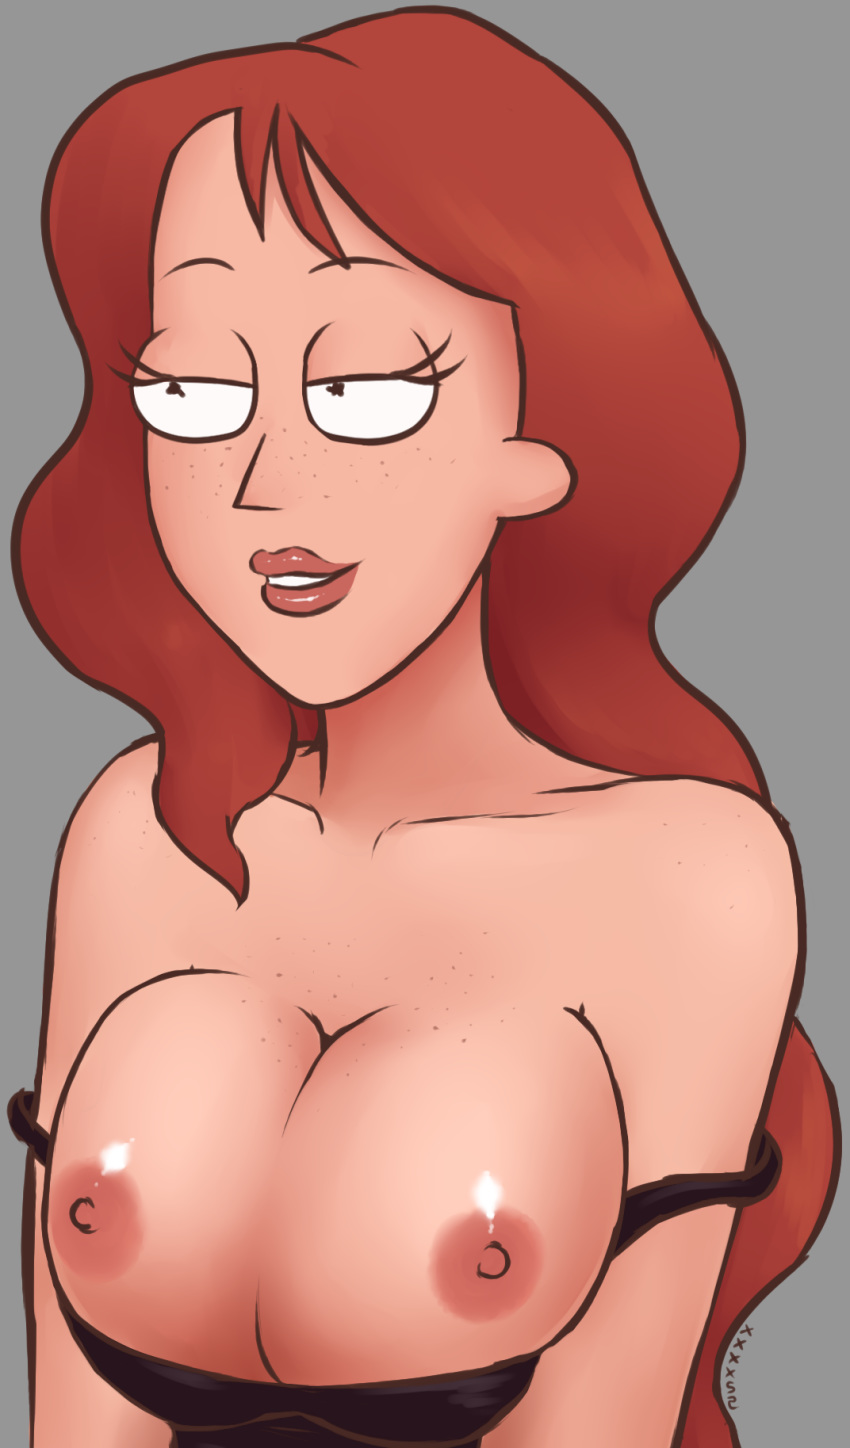 wine morty and rick gif Dexter's laboratory sex pills 3